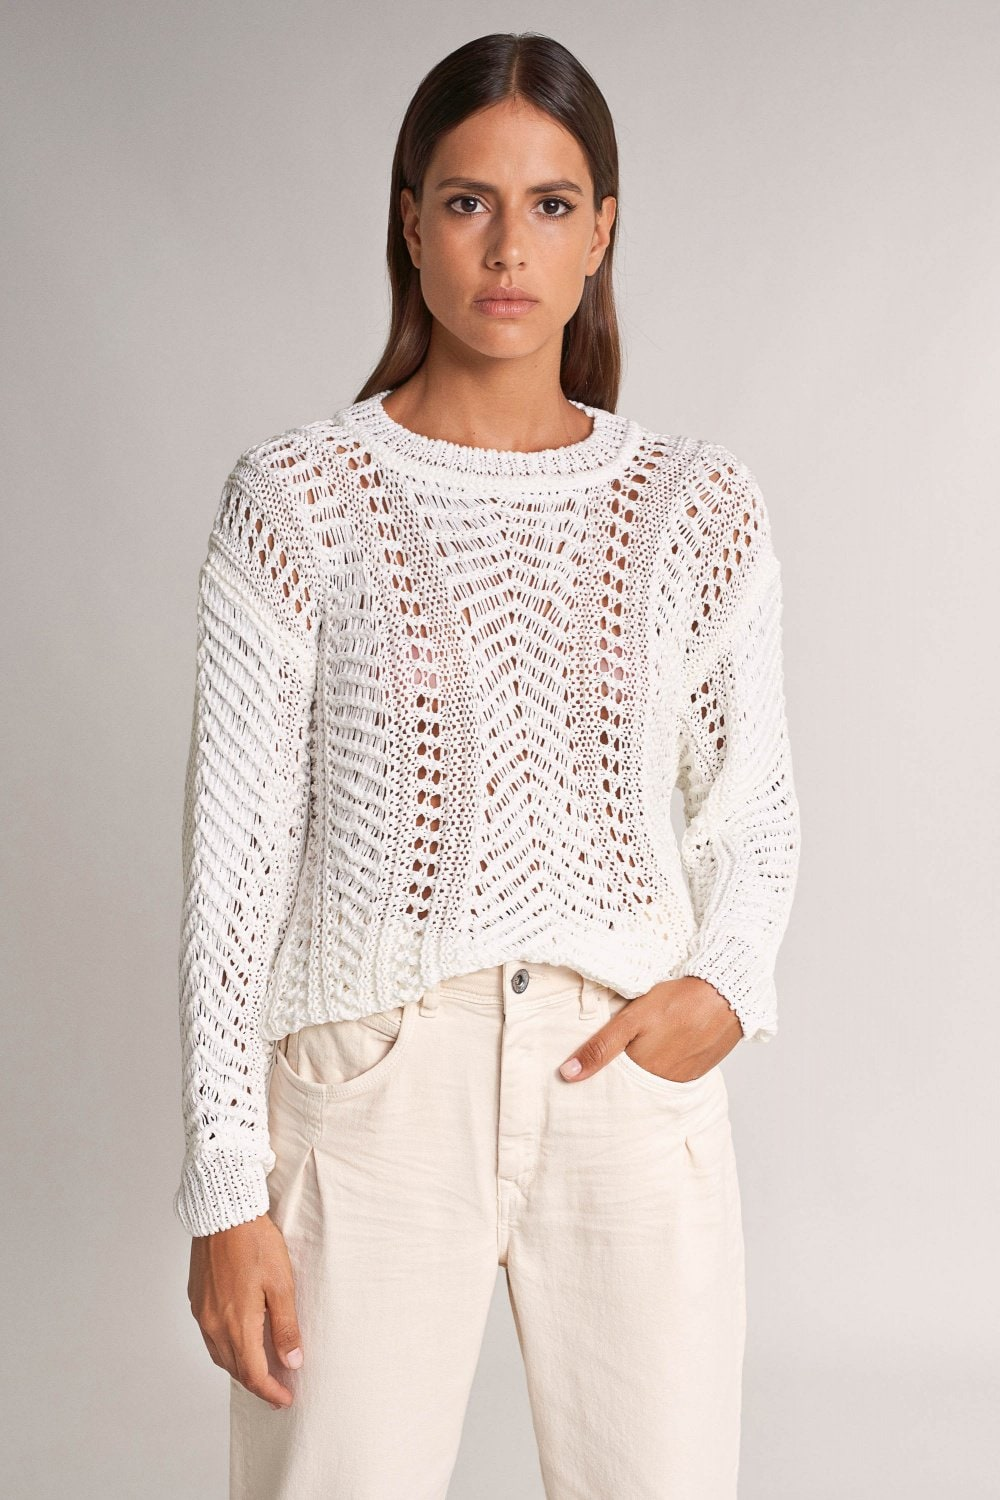 Oversize knitted sweater - Salsa